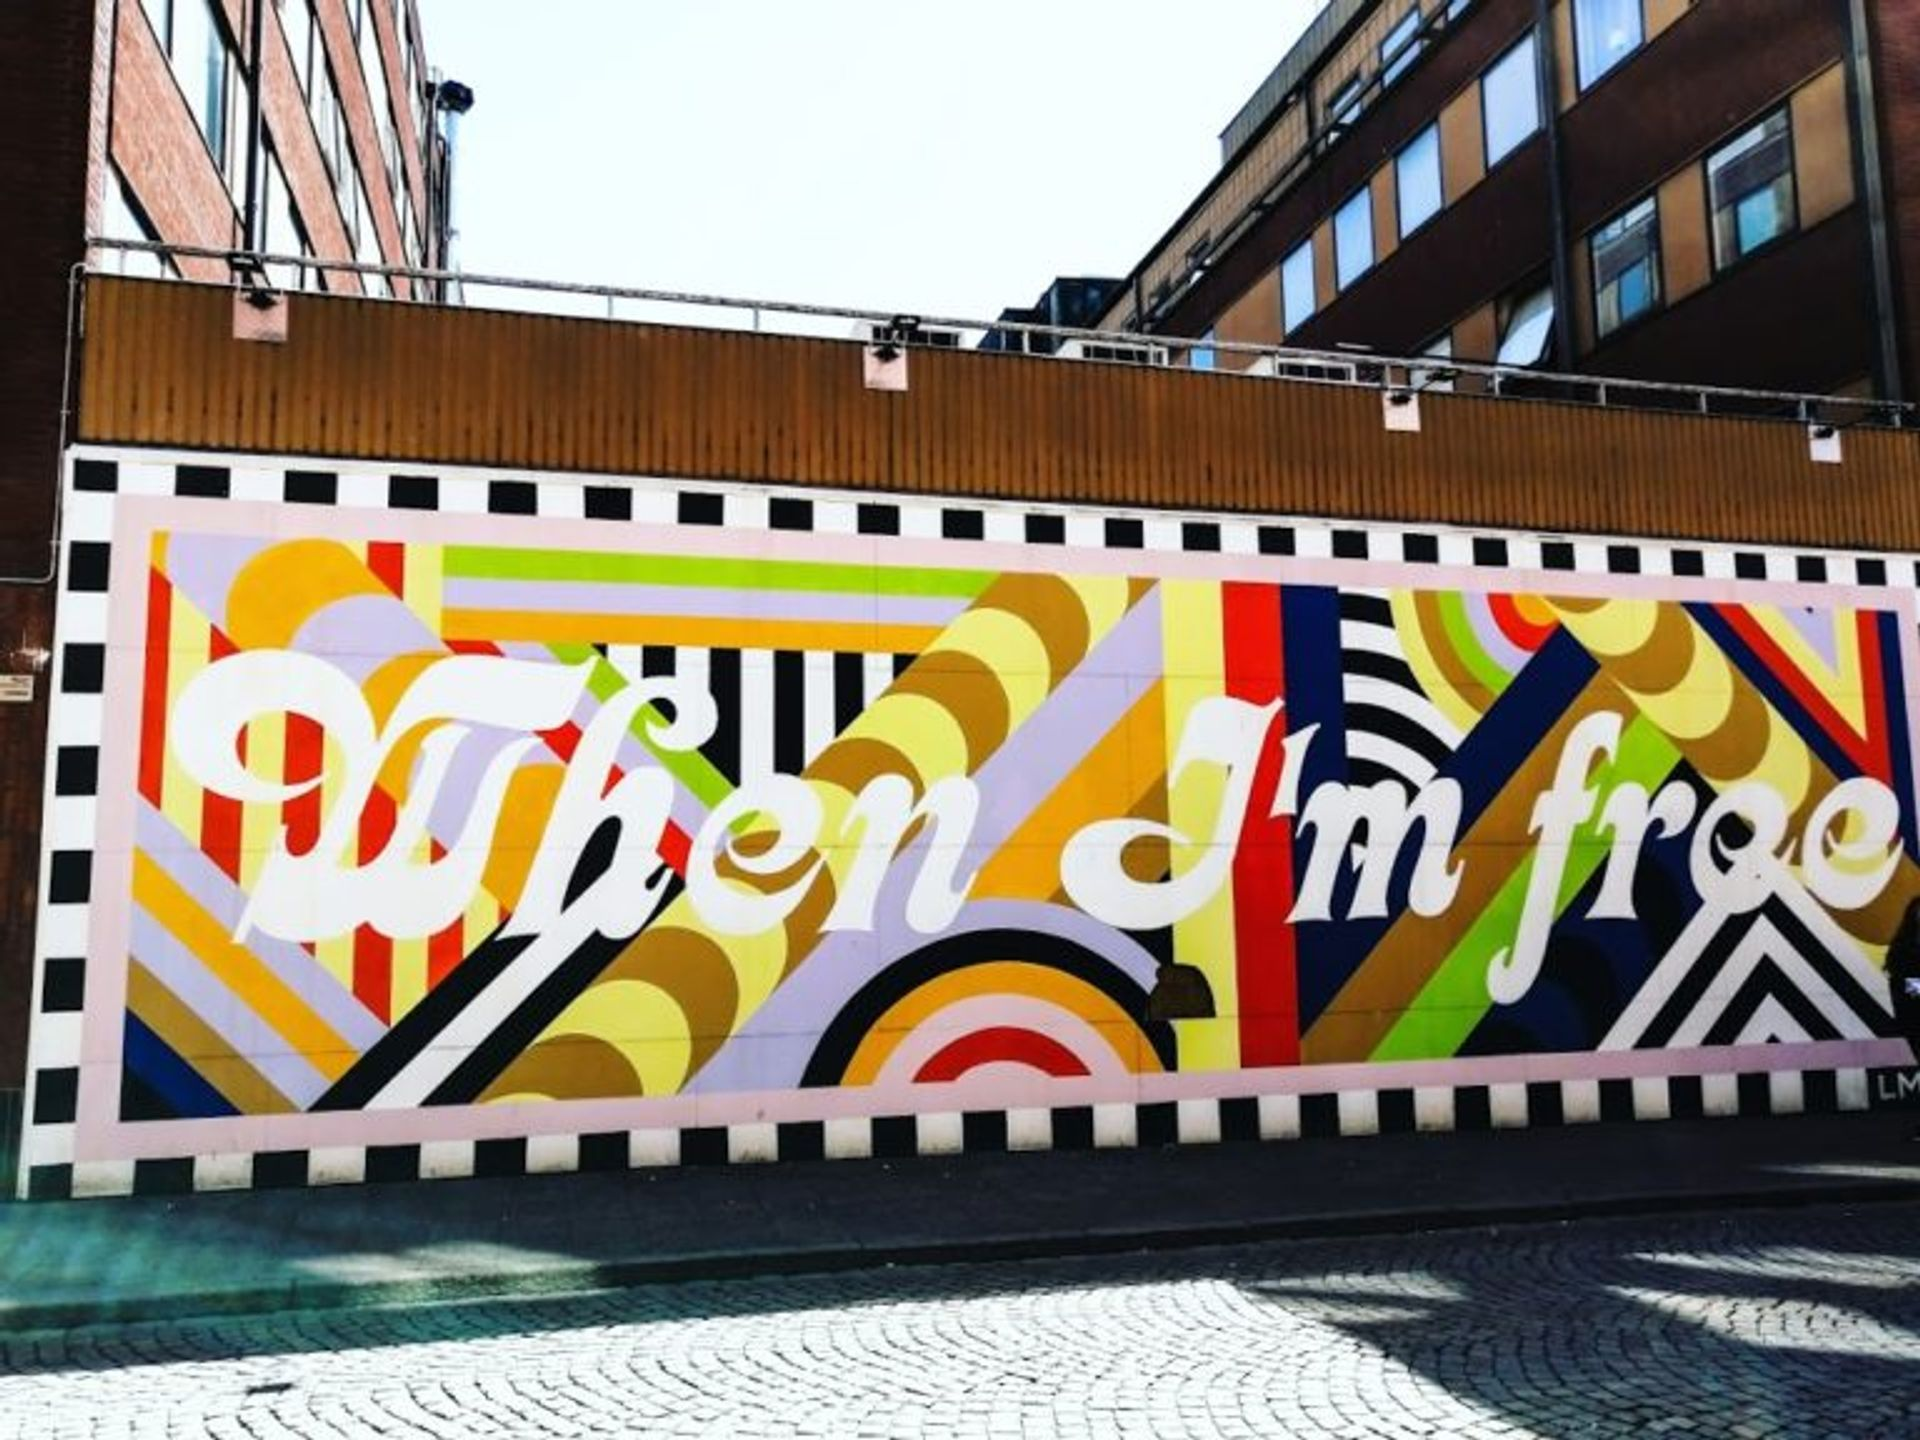 Boldly coloured mural with text 'When I'm free'.